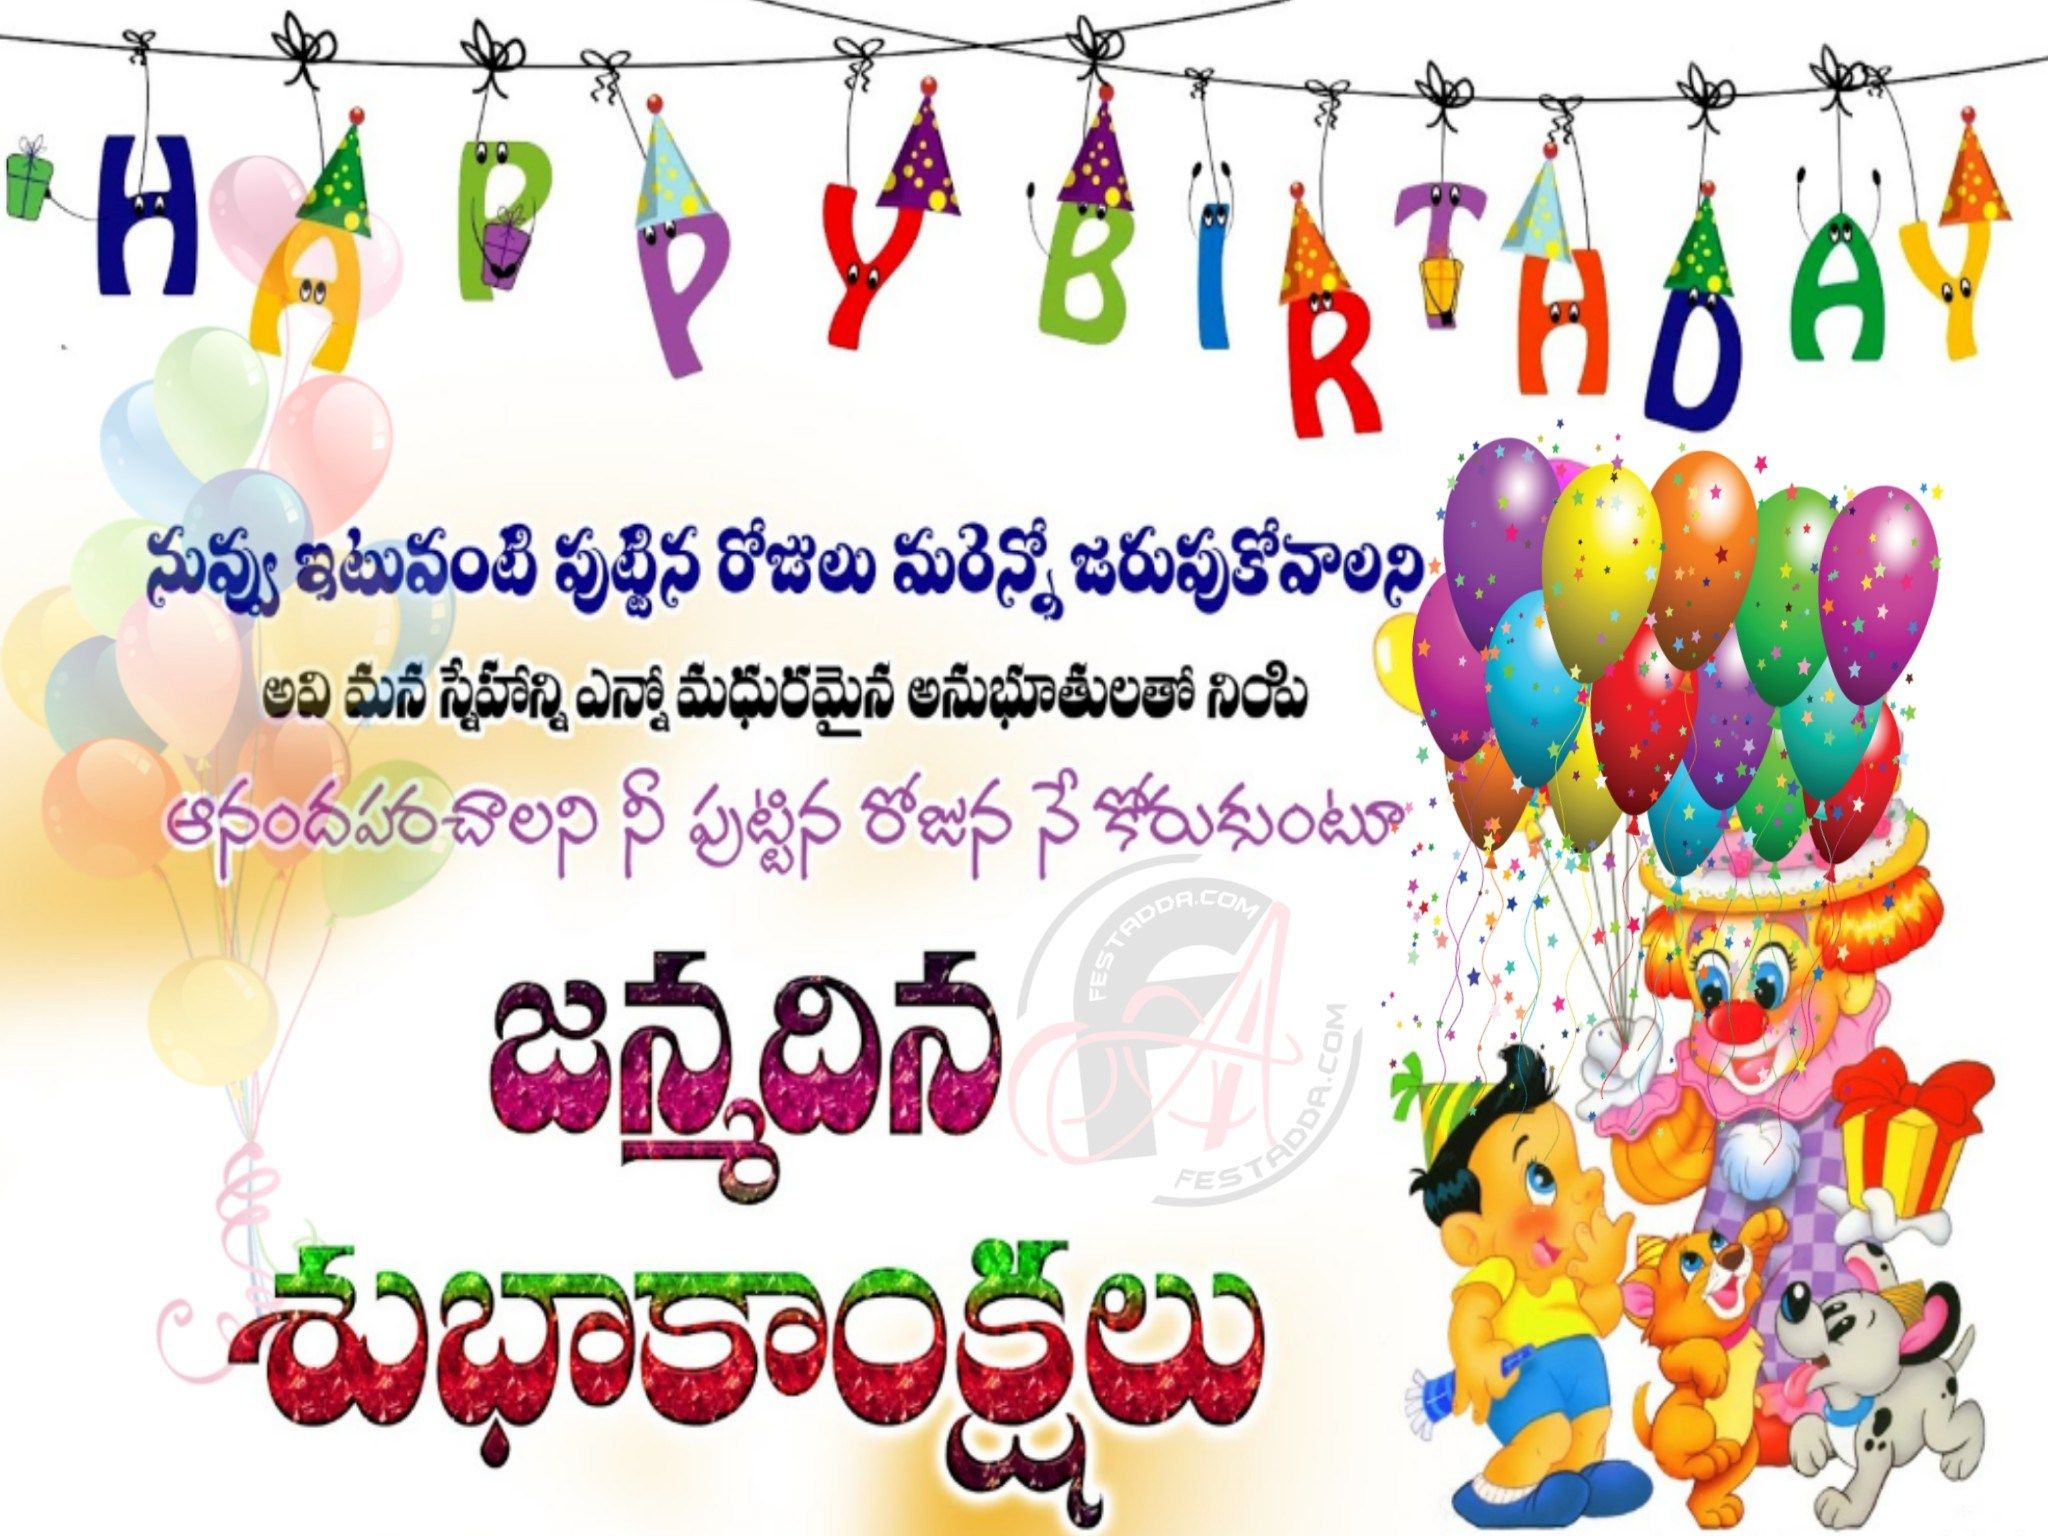 Happy Birth Day Wishes Sms 140 Characters In Telugu Happy